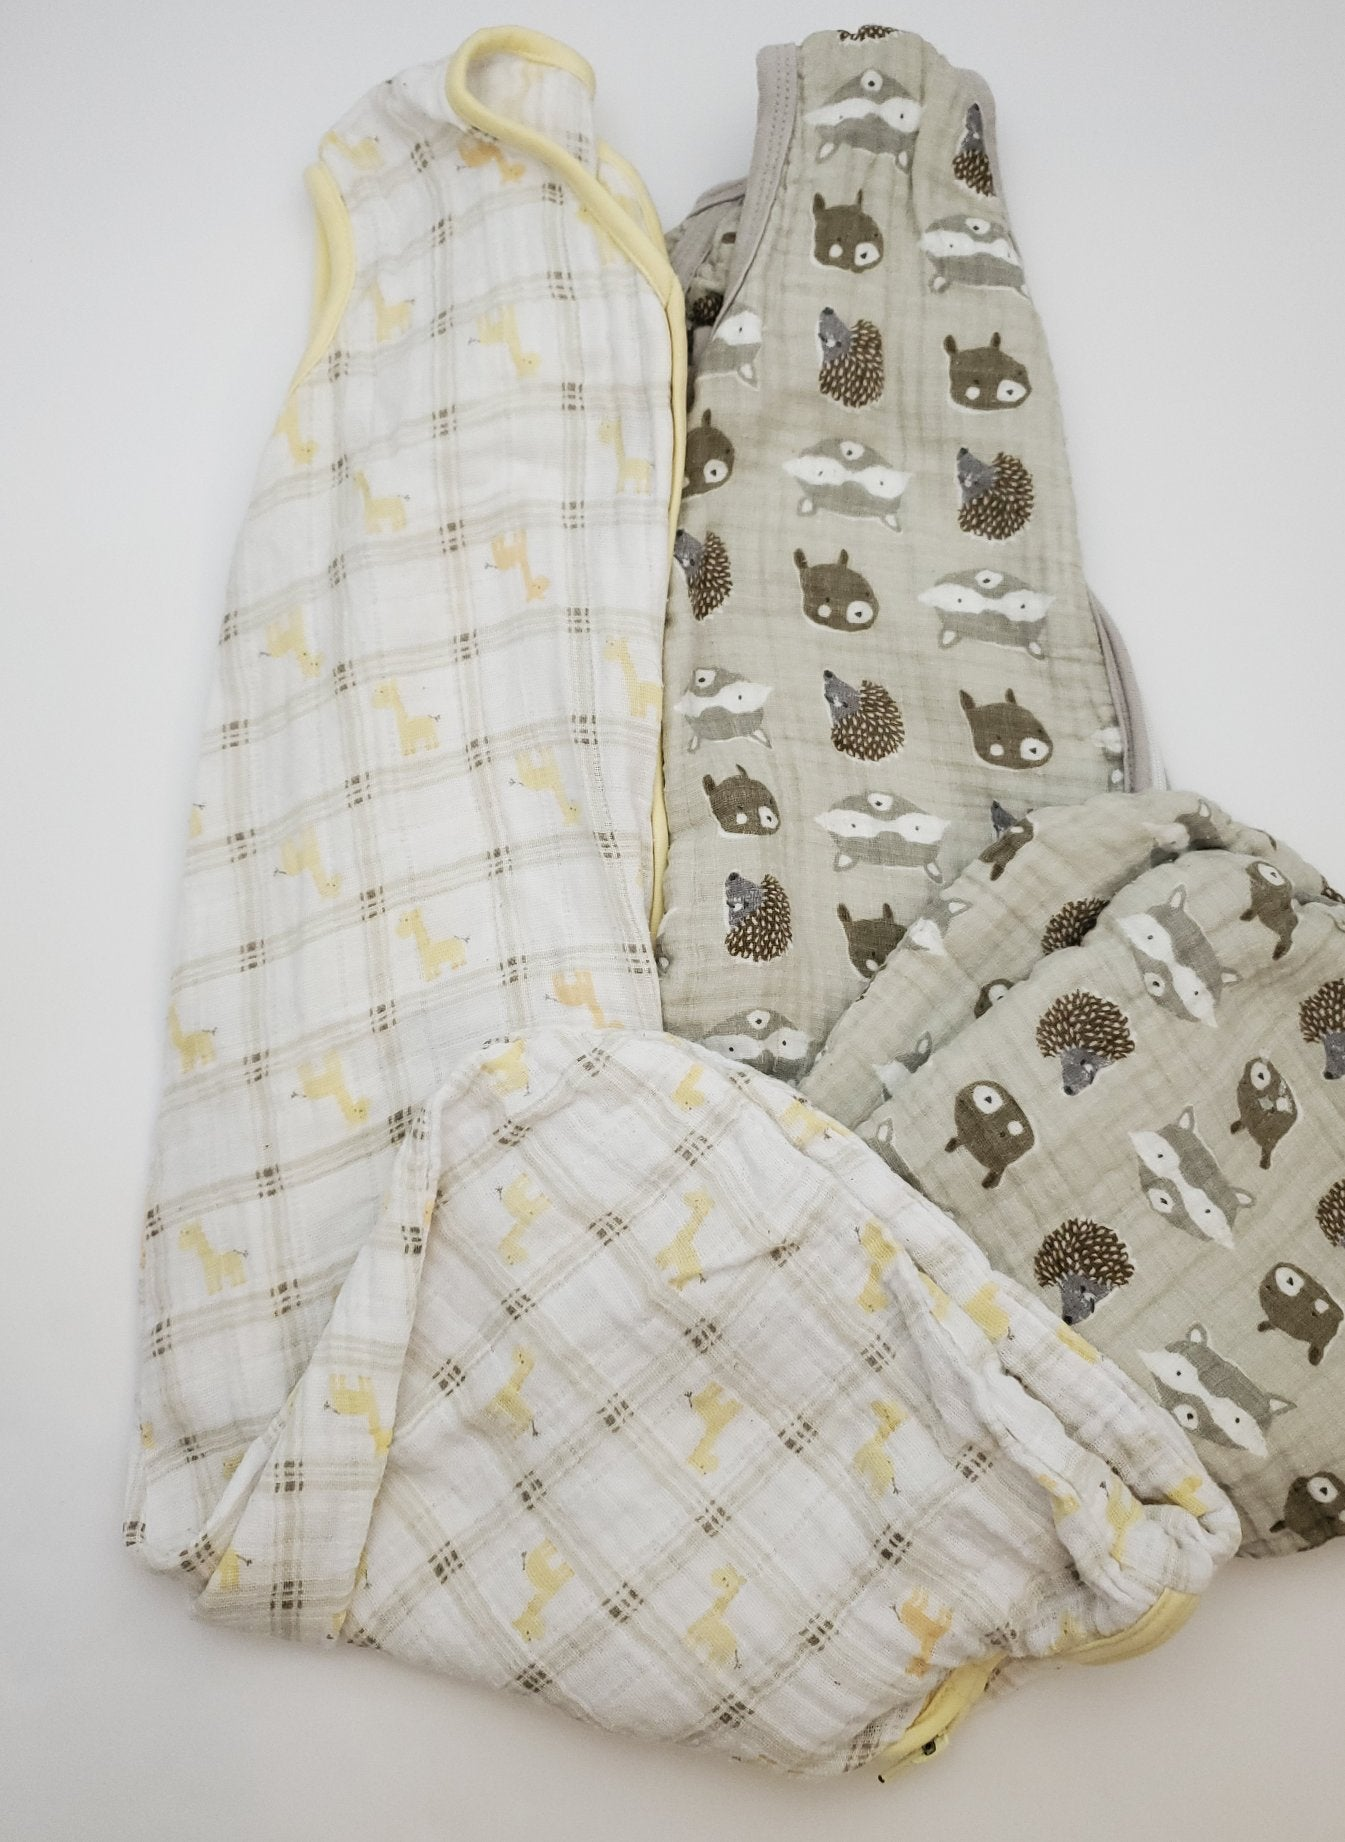 Resale Medium / 6-12 m Halo & Patina Vie Baby Sleep Sack Set - Giraffes & Owls